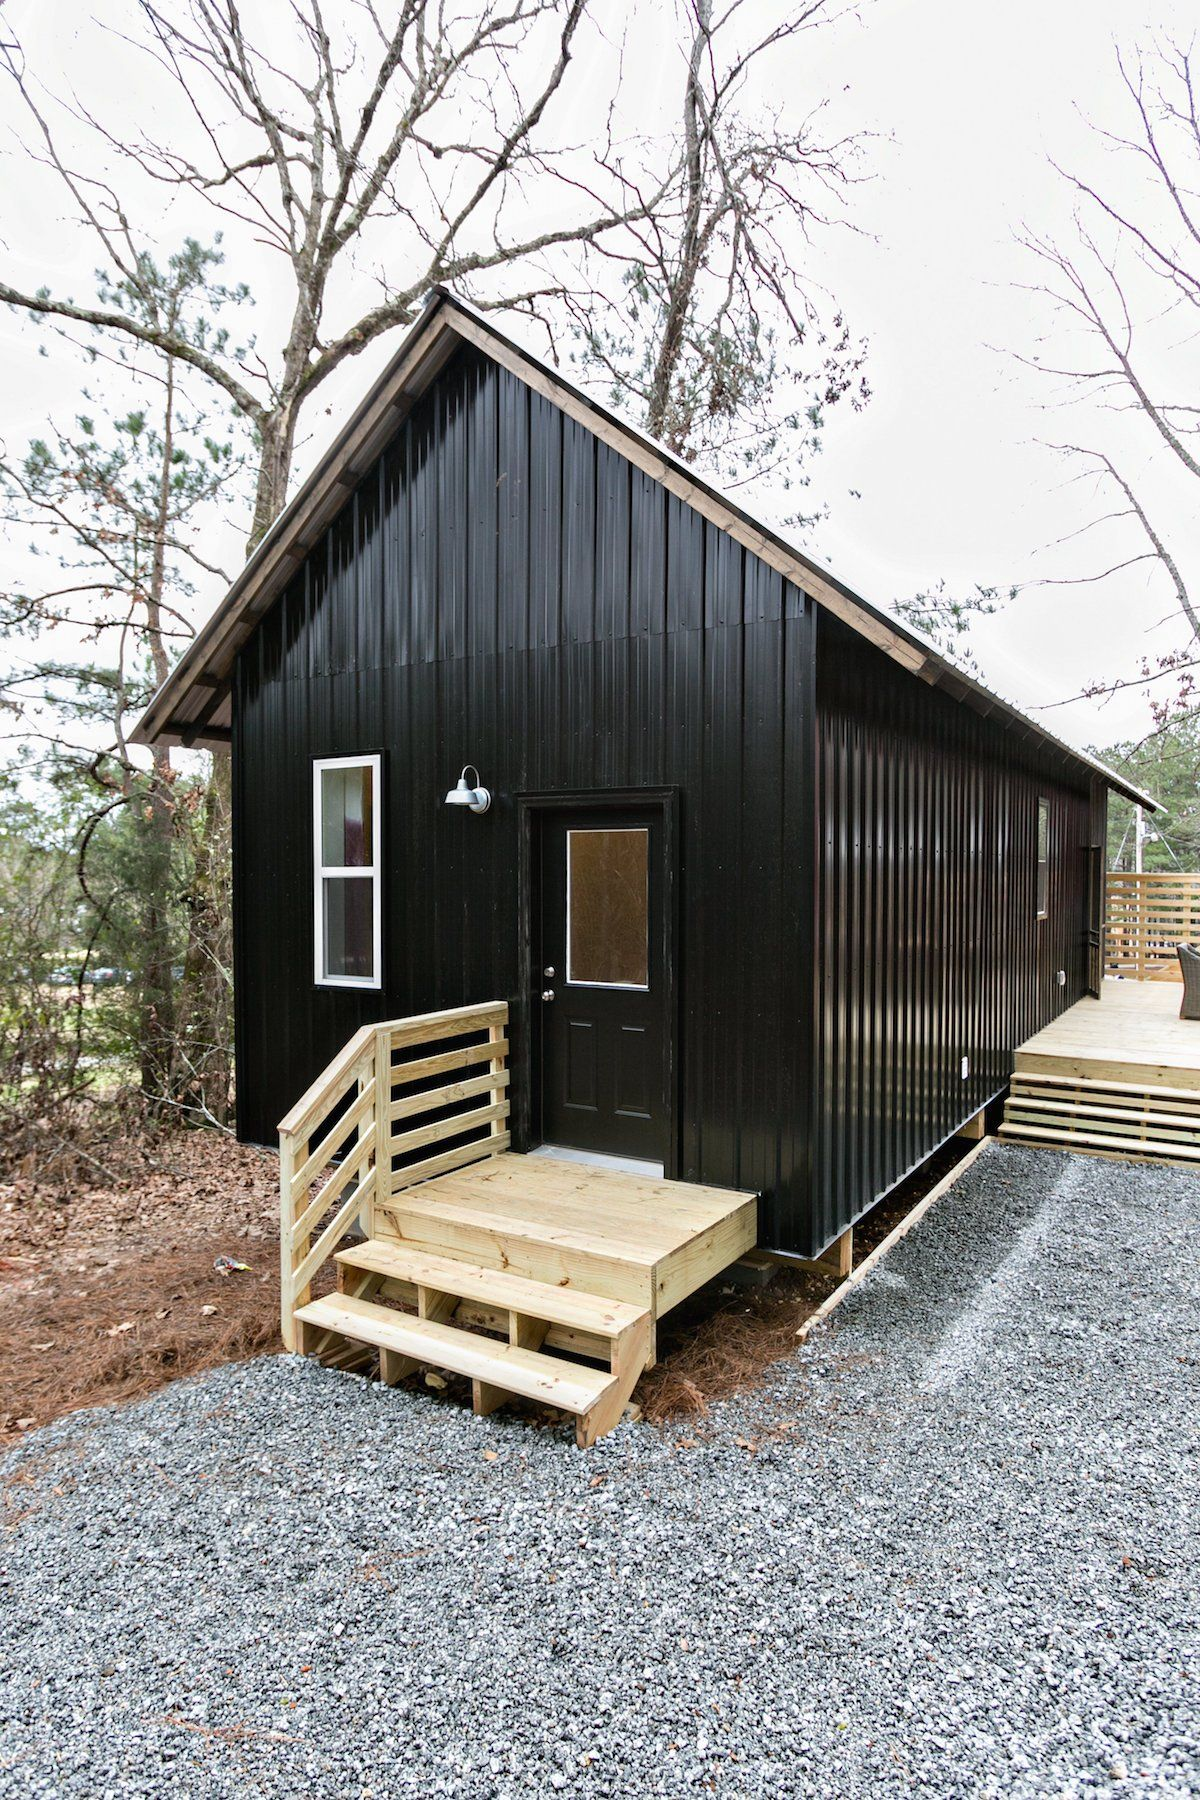 The 500 Square Foot Homes Walls Are Primarily Made From Local Pine